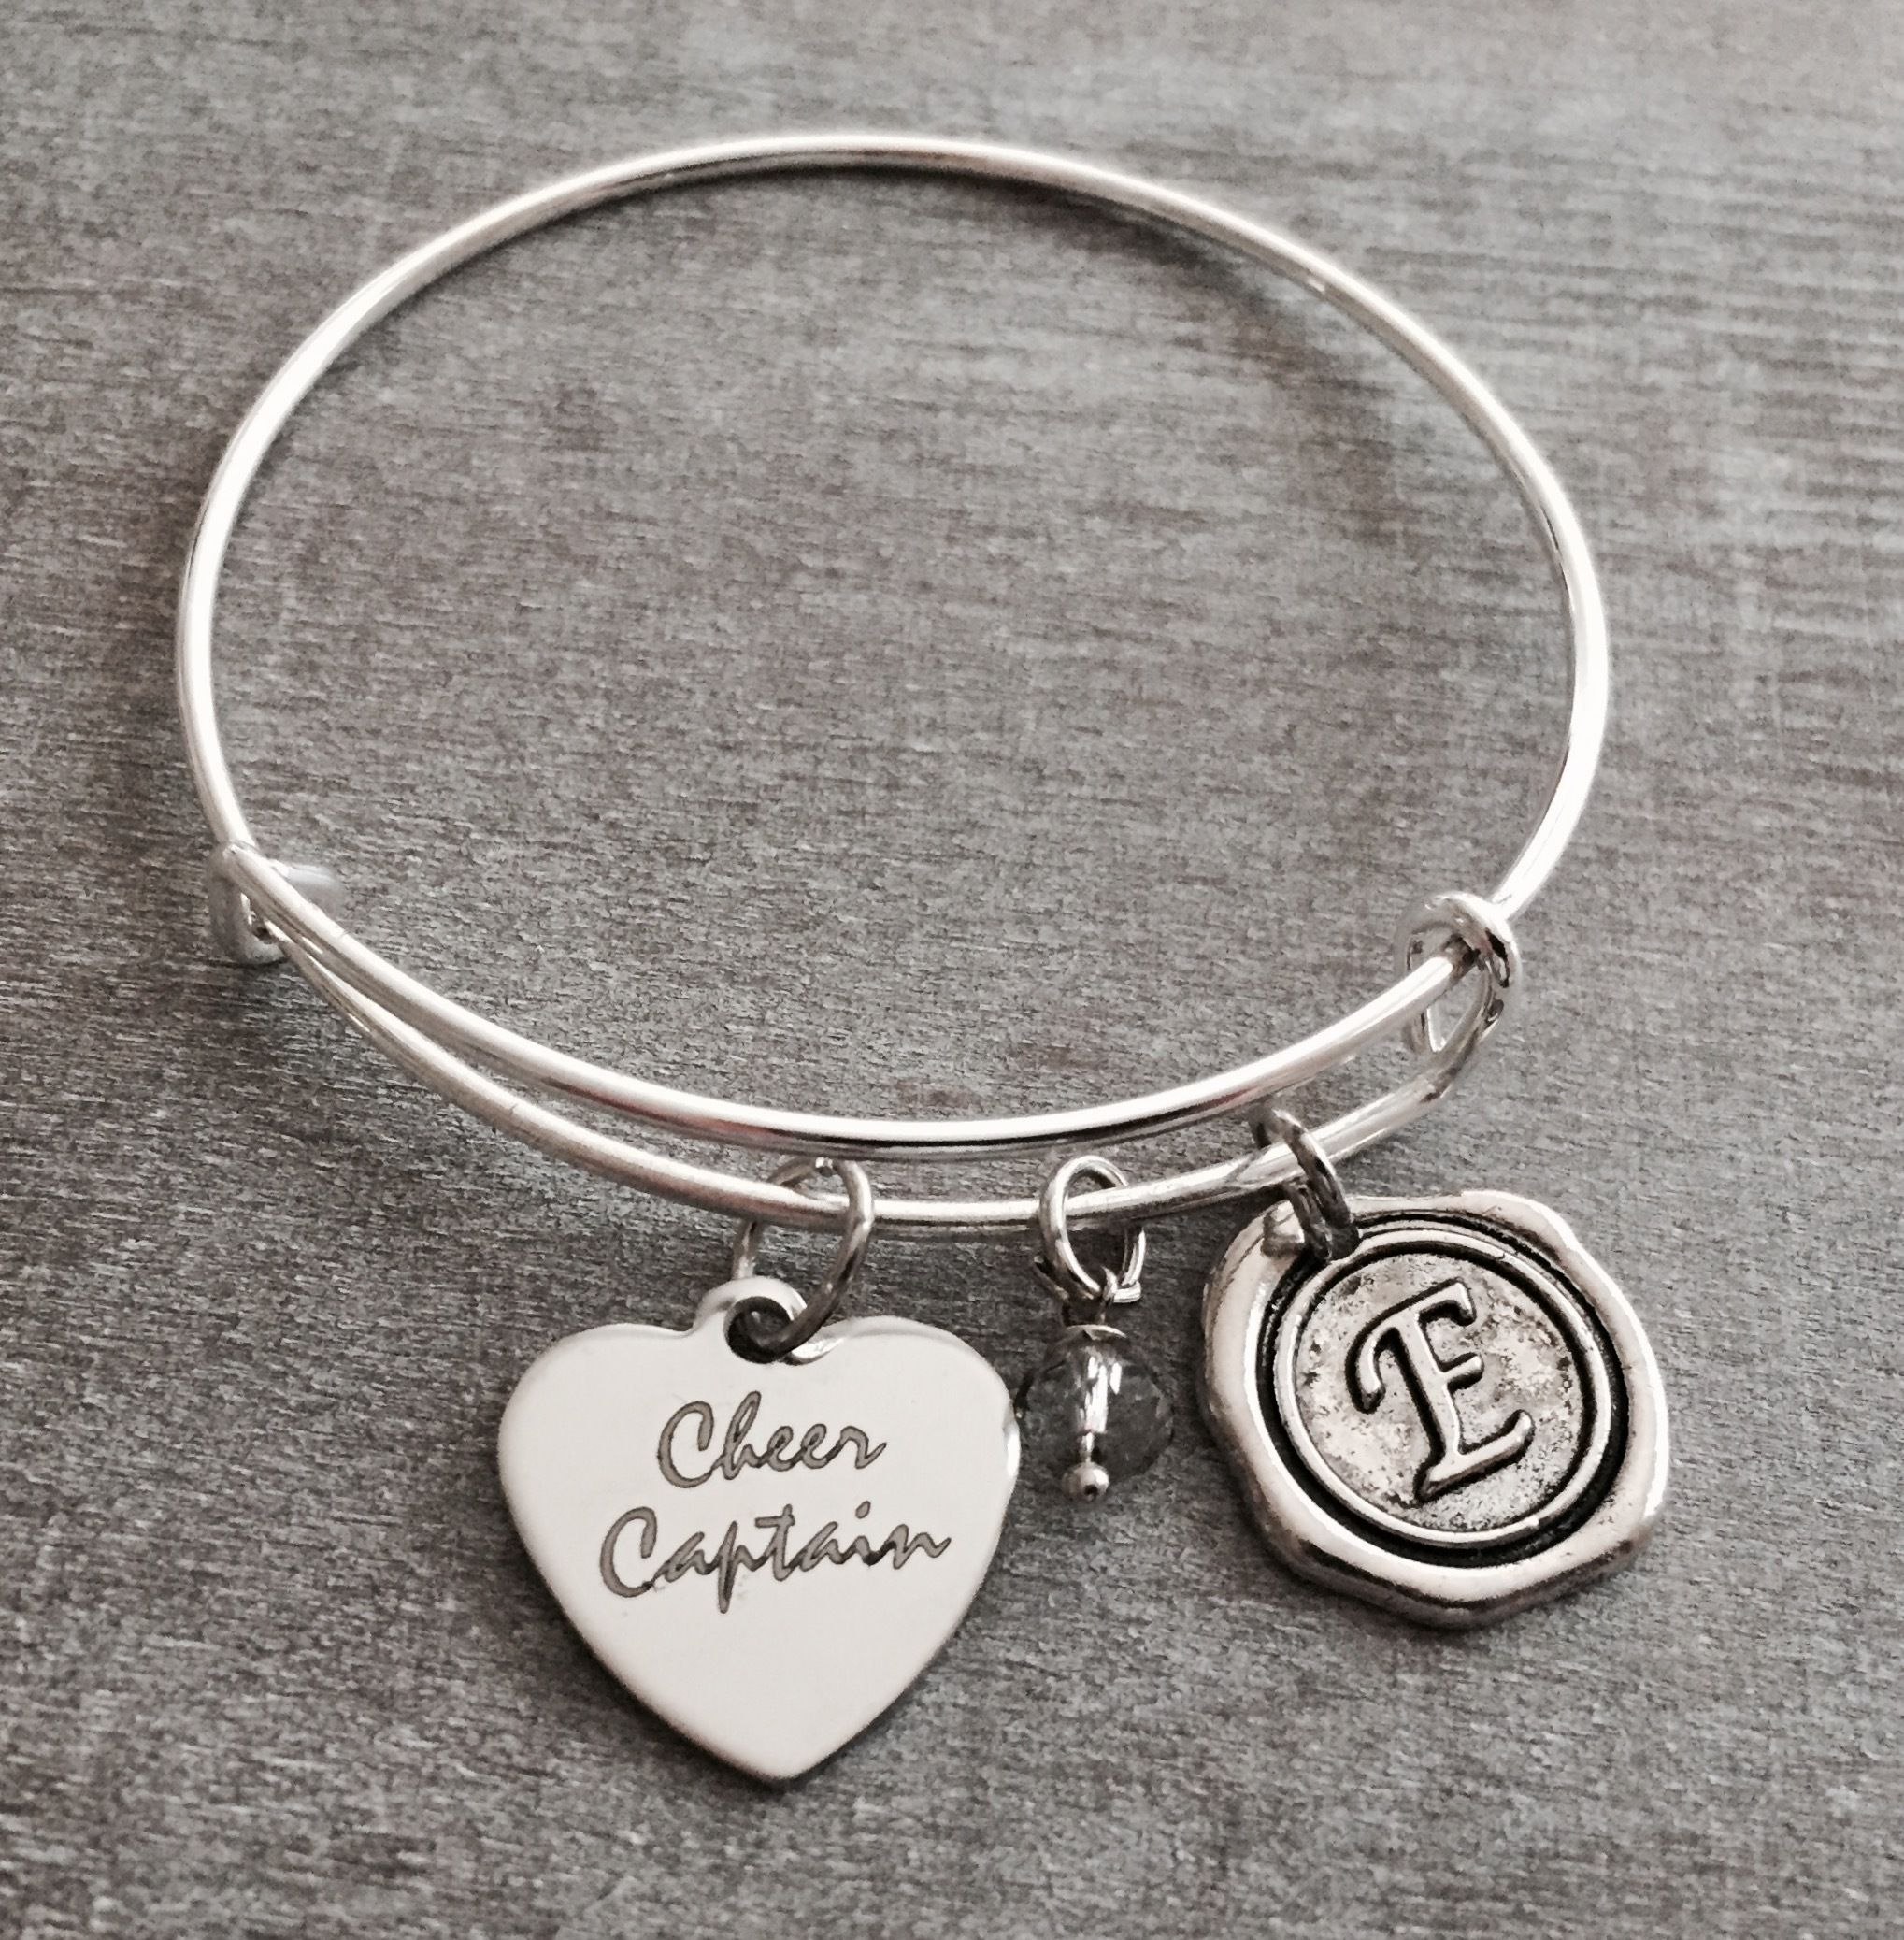 Cocheer Captain Silver Charm Bracelet Cheerleader Cheer Jewelry Gifts By Sajolie